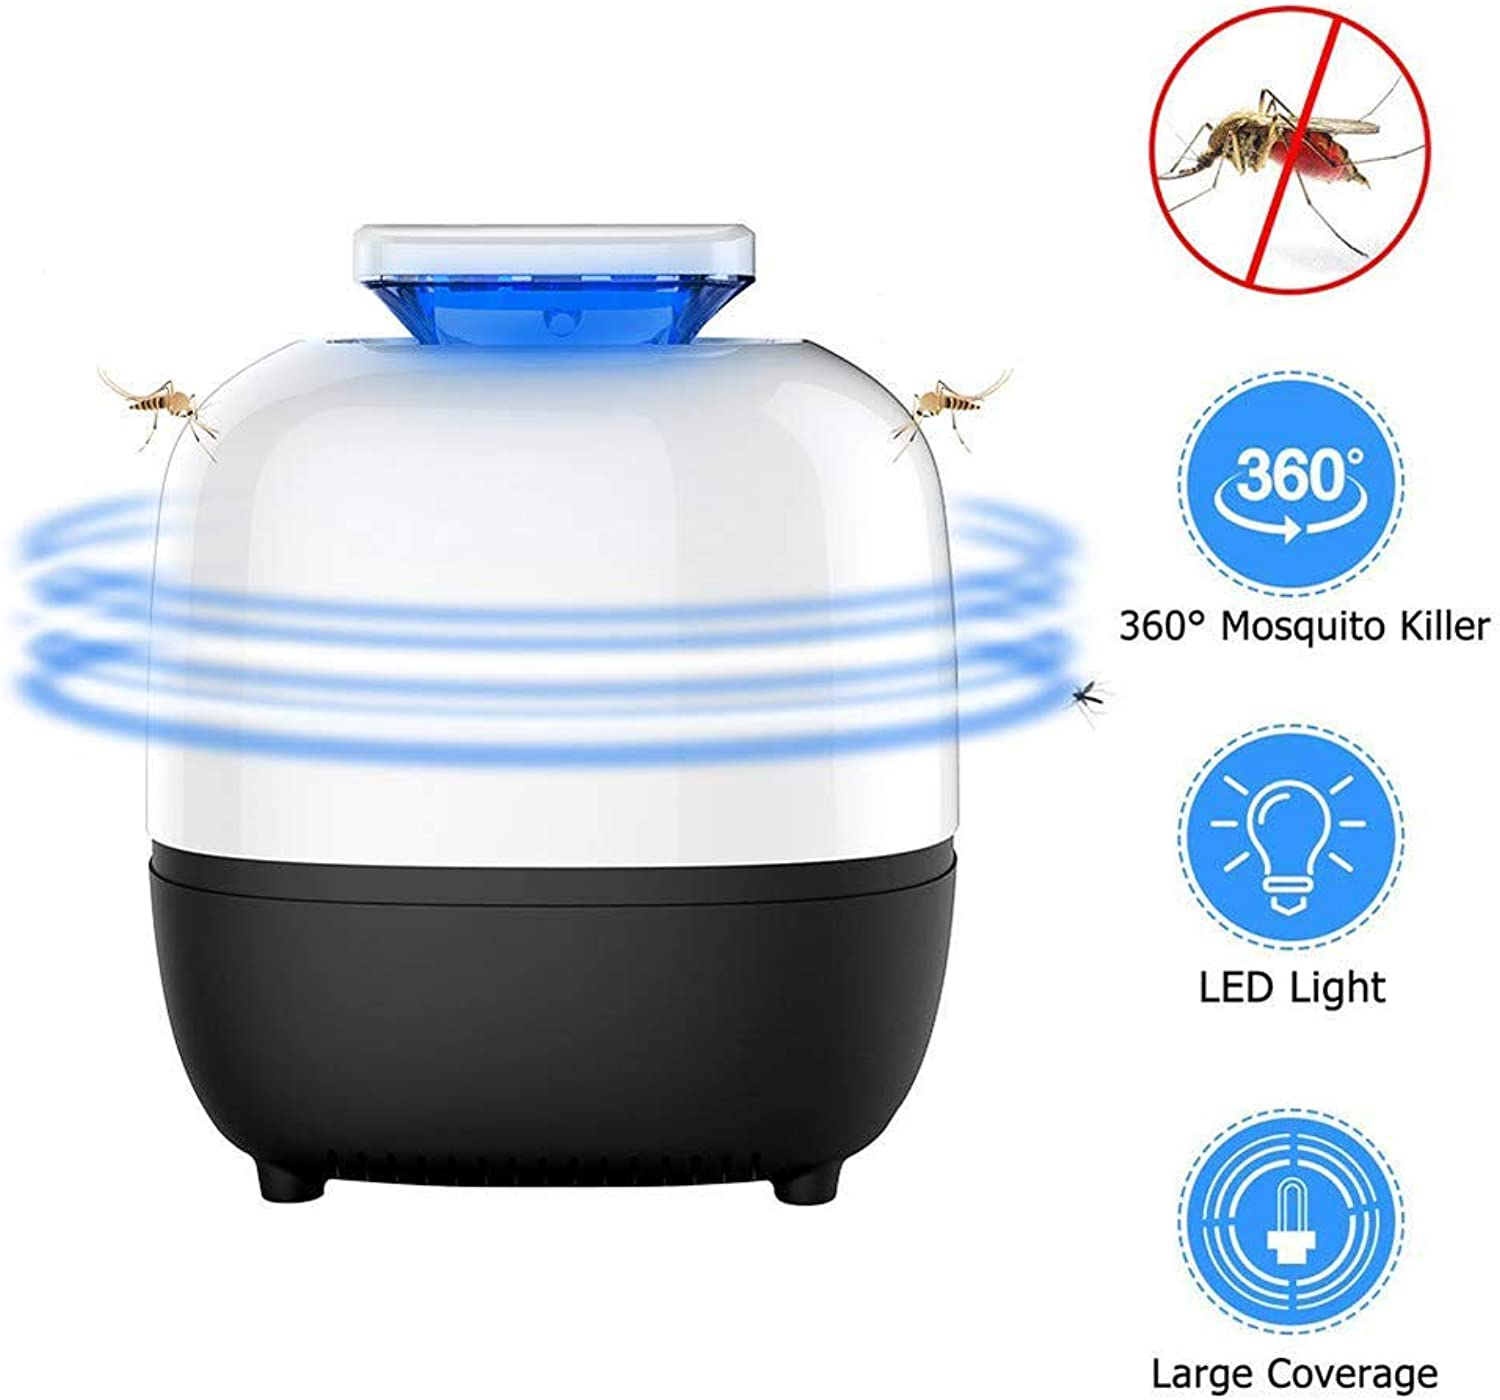 Mosquito Killer Bug Zapper Lamp Electric Insect Killer USB Powered UV LED Mosquito Insect Trap with Built in Fan for Indoor Bedroom Kitchen Garden Office Use (Black)